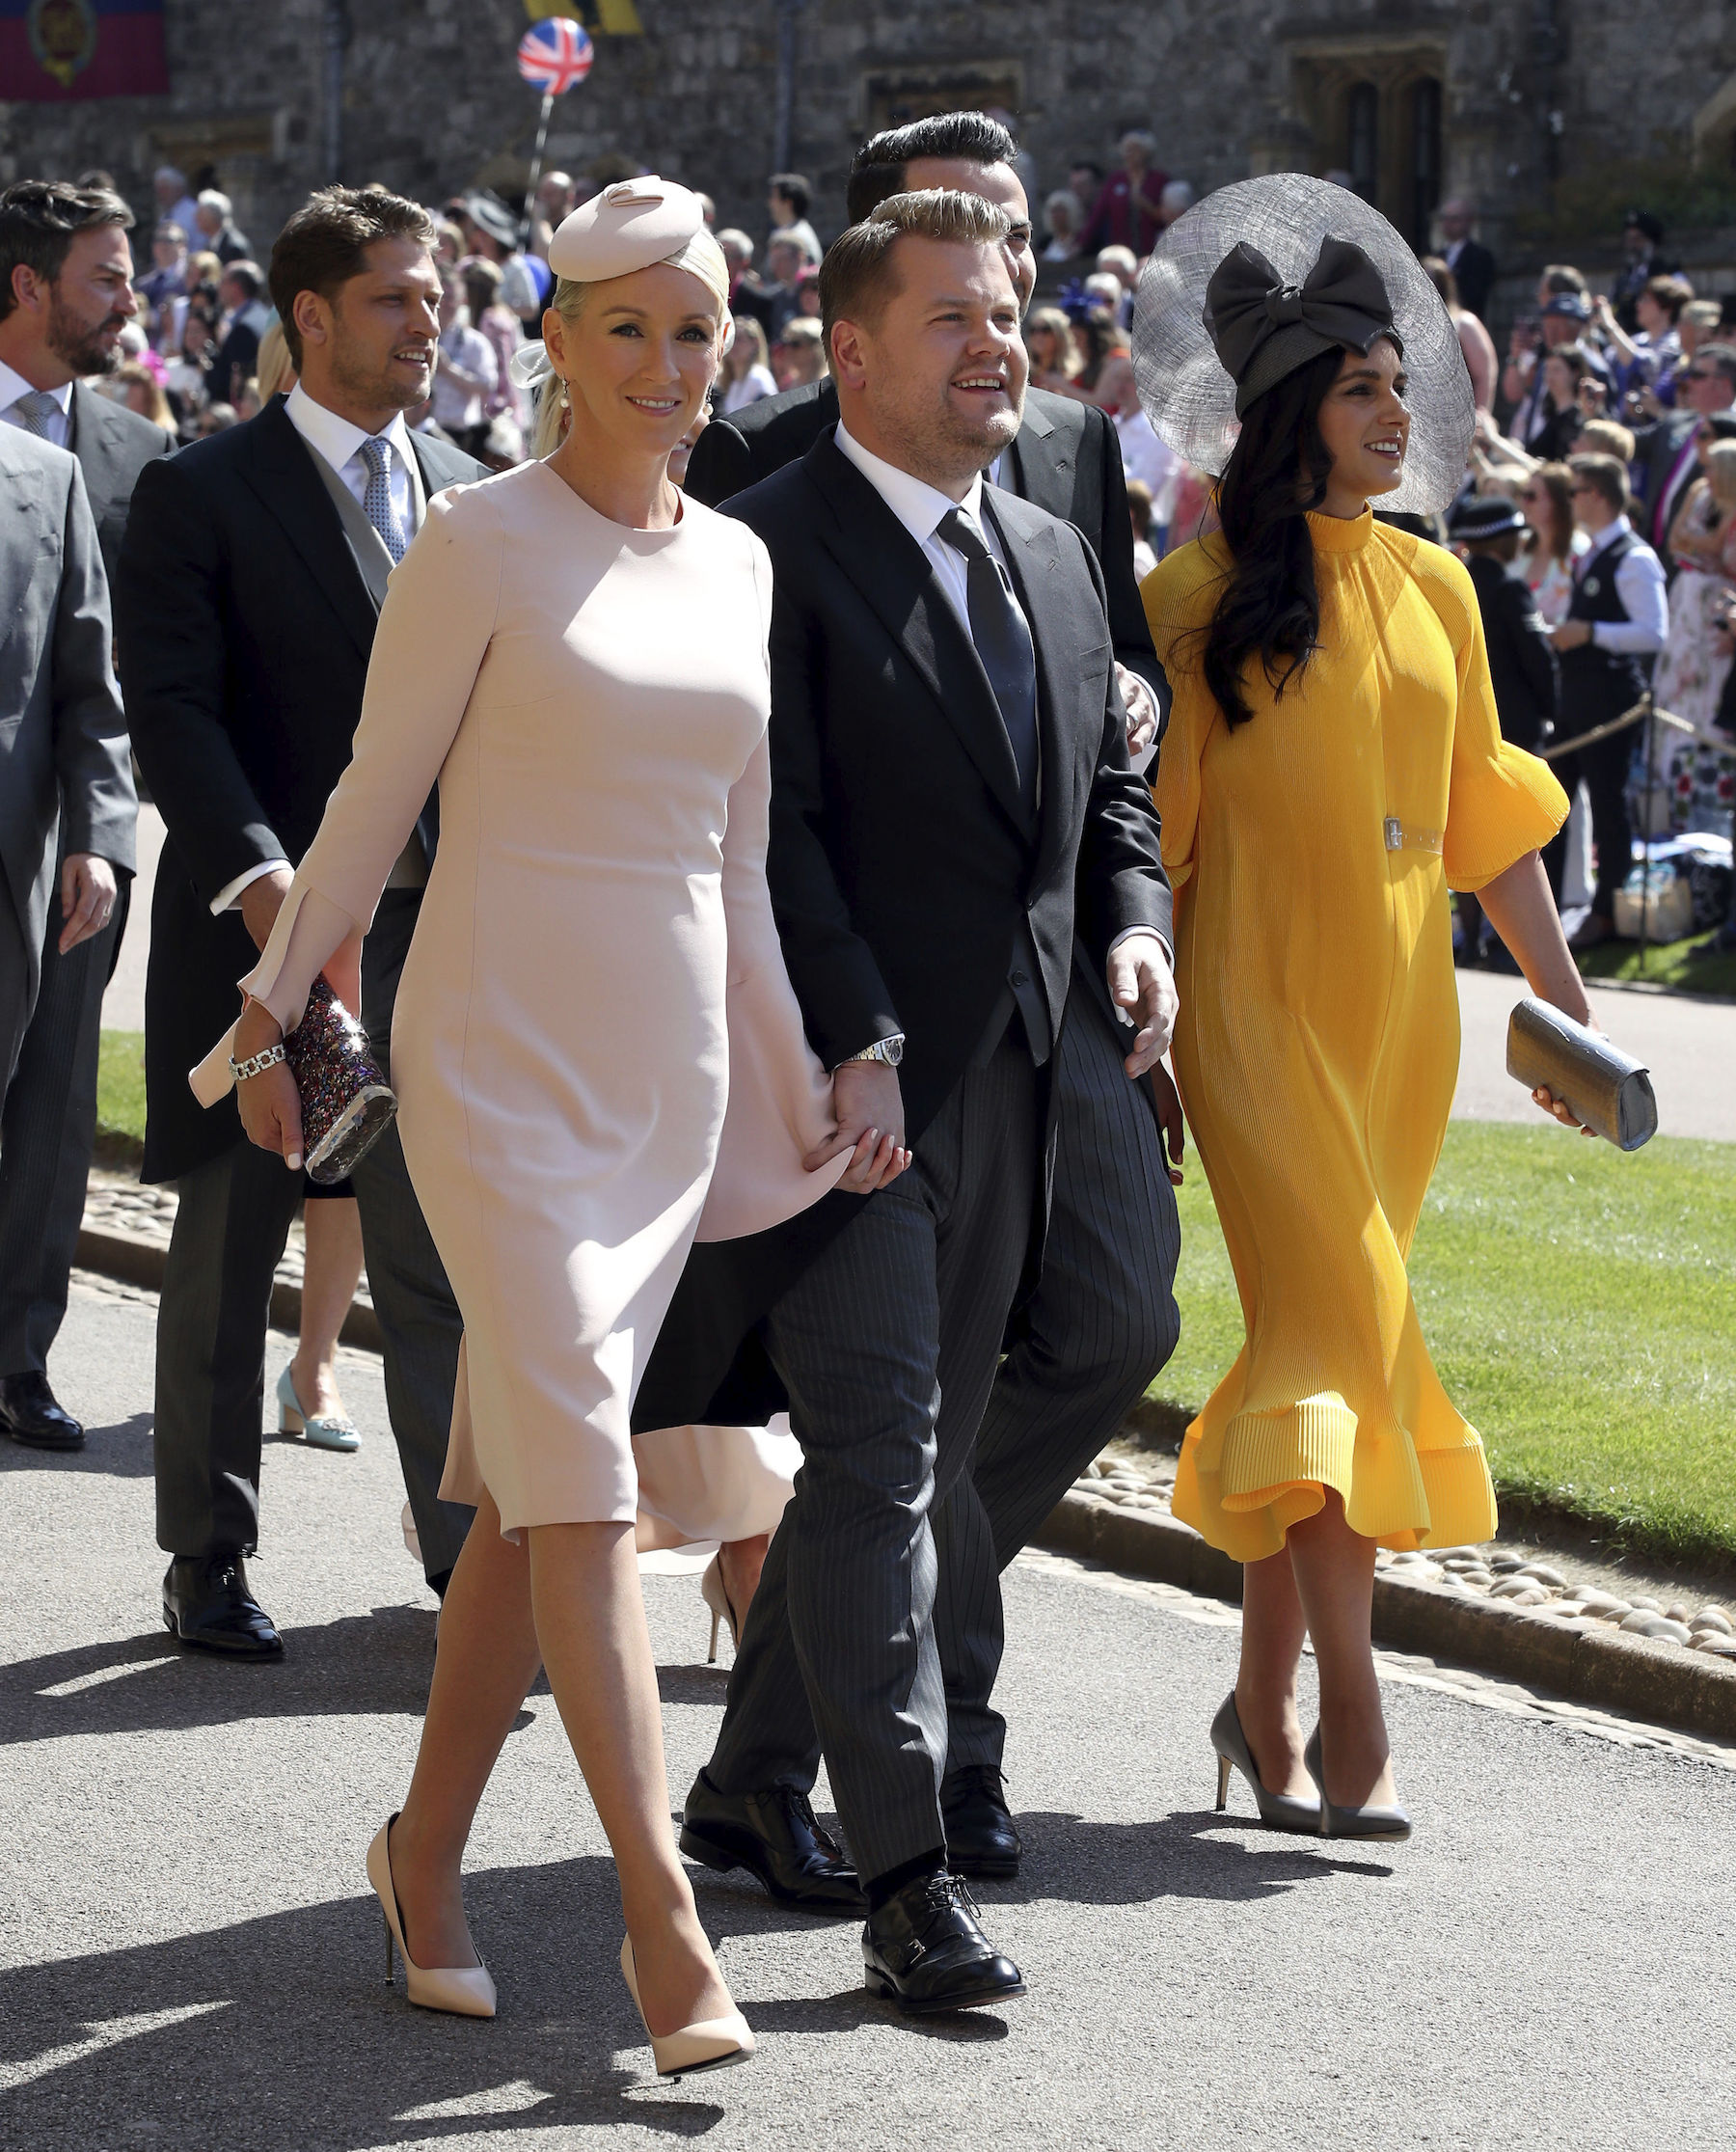 <div class='meta'><div class='origin-logo' data-origin='AP'></div><span class='caption-text' data-credit='Chris Radburn/PA Wire'>James Corden and Julia Carey arrive at St George's Chapel at Windsor Castle for the wedding of Meghan Markle and Prince Harry.</span></div>